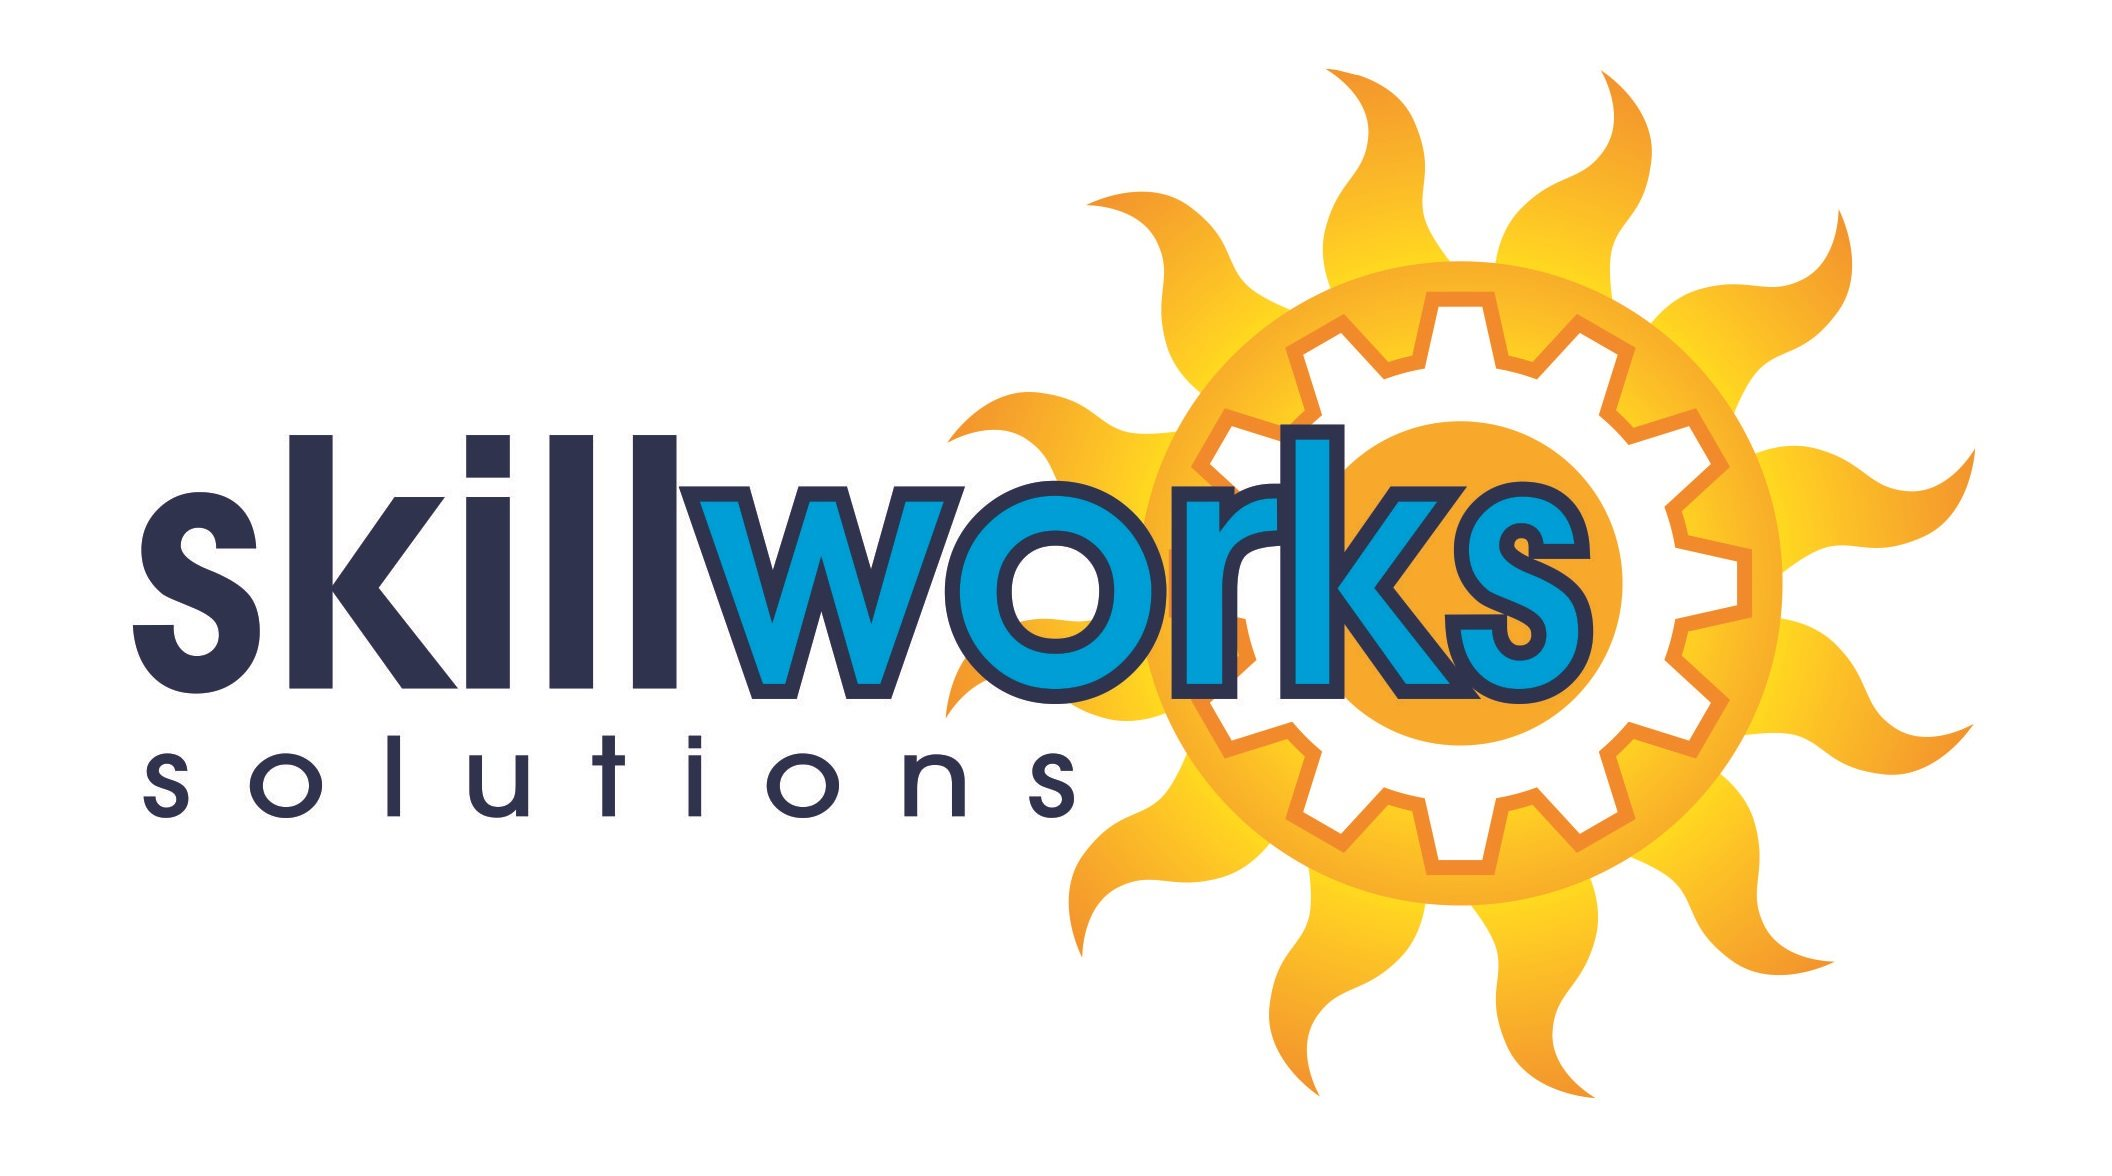 Skillworks Solutions